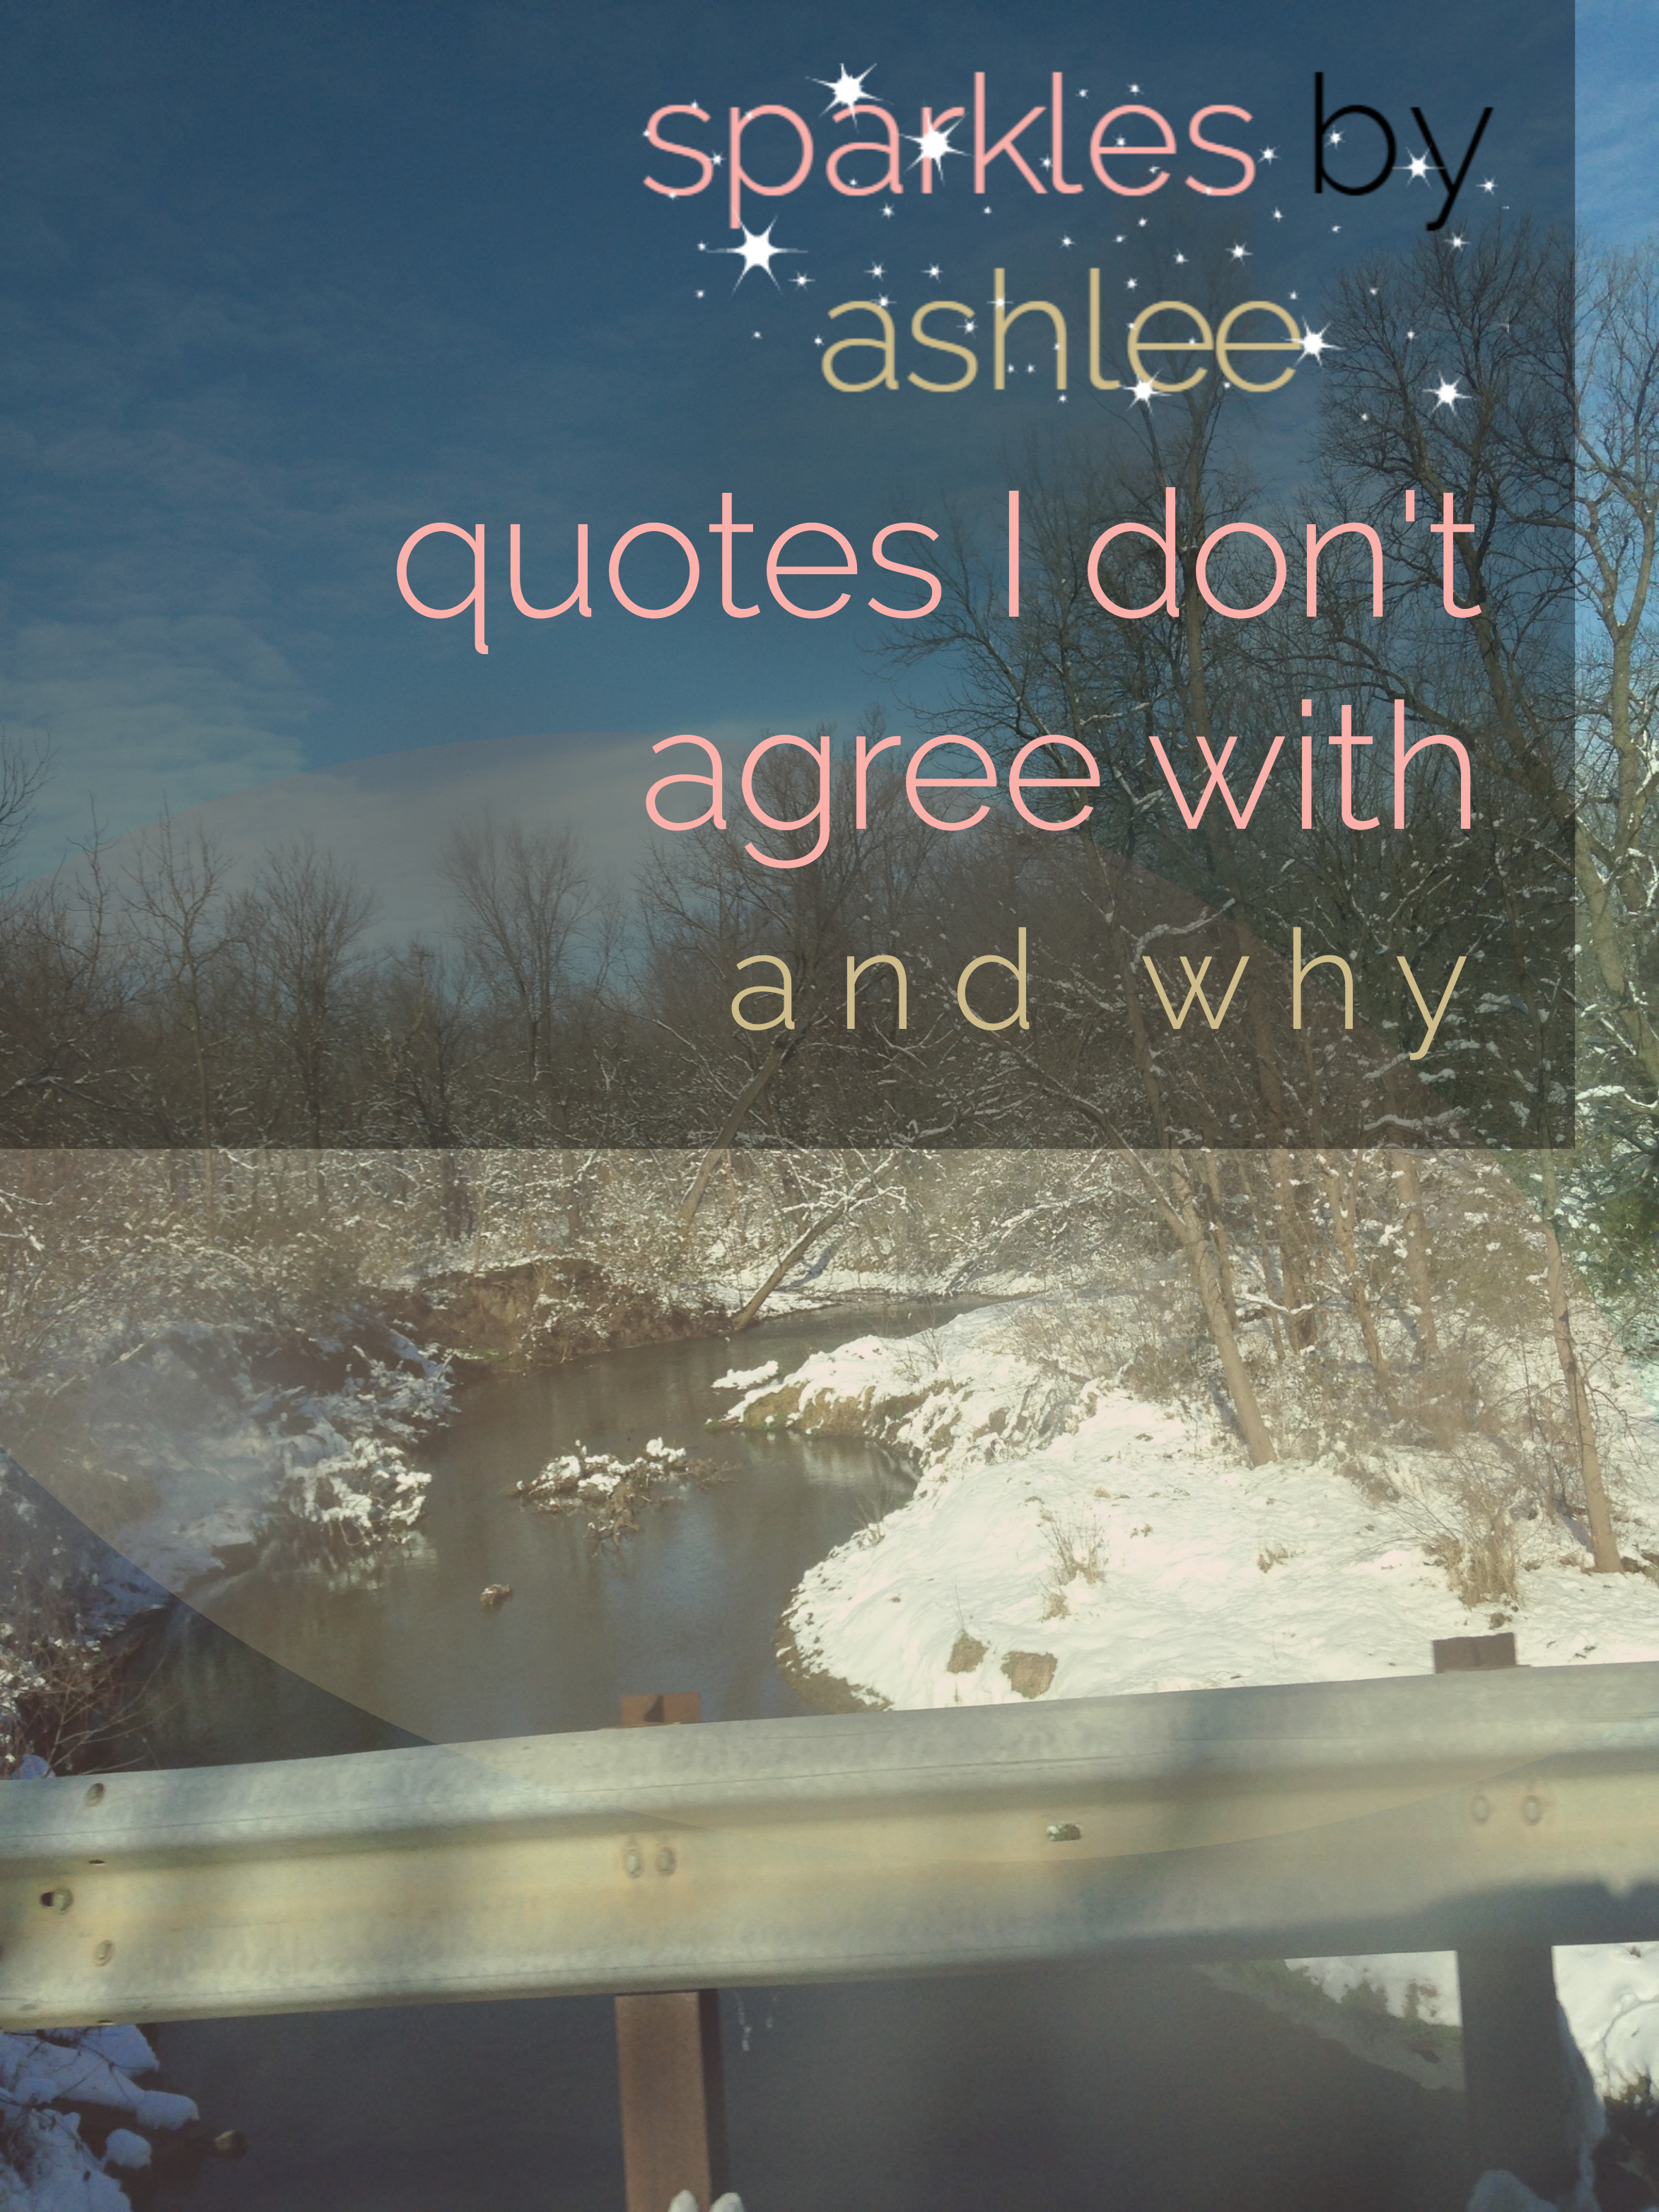 Quotes-I-Dont-Agree-With-Sparkles-by-Ashlee.jpg